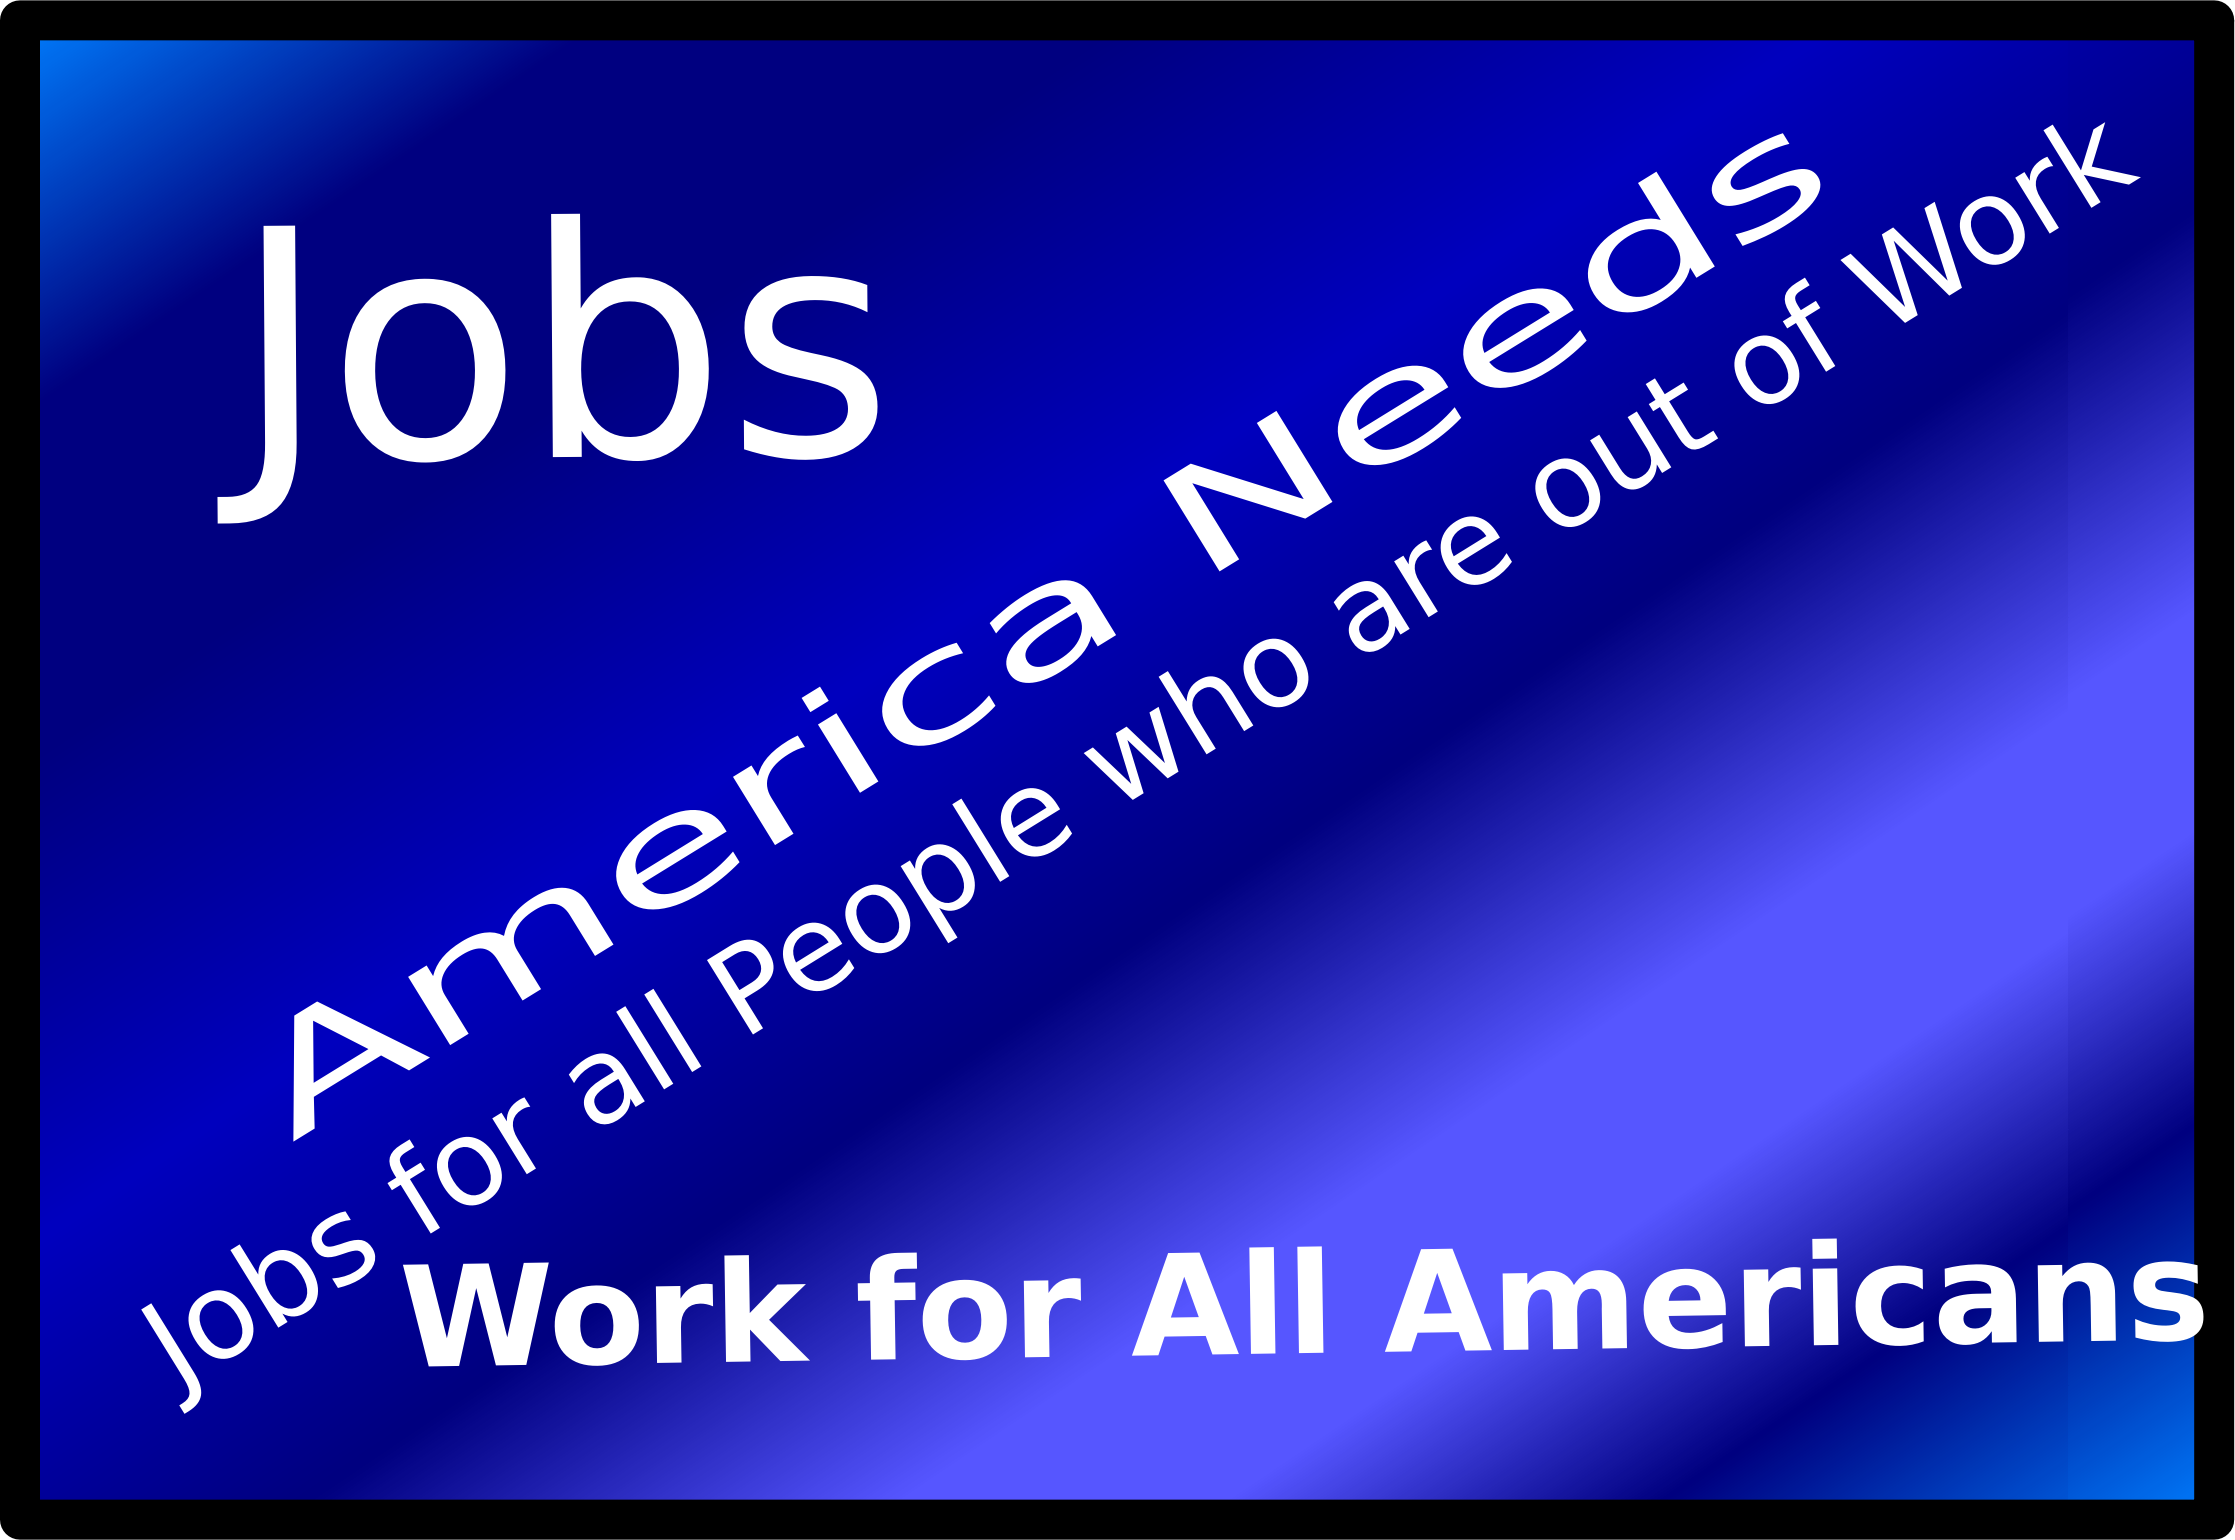 Jobs... Work... America Needs Jobs. by zerozip